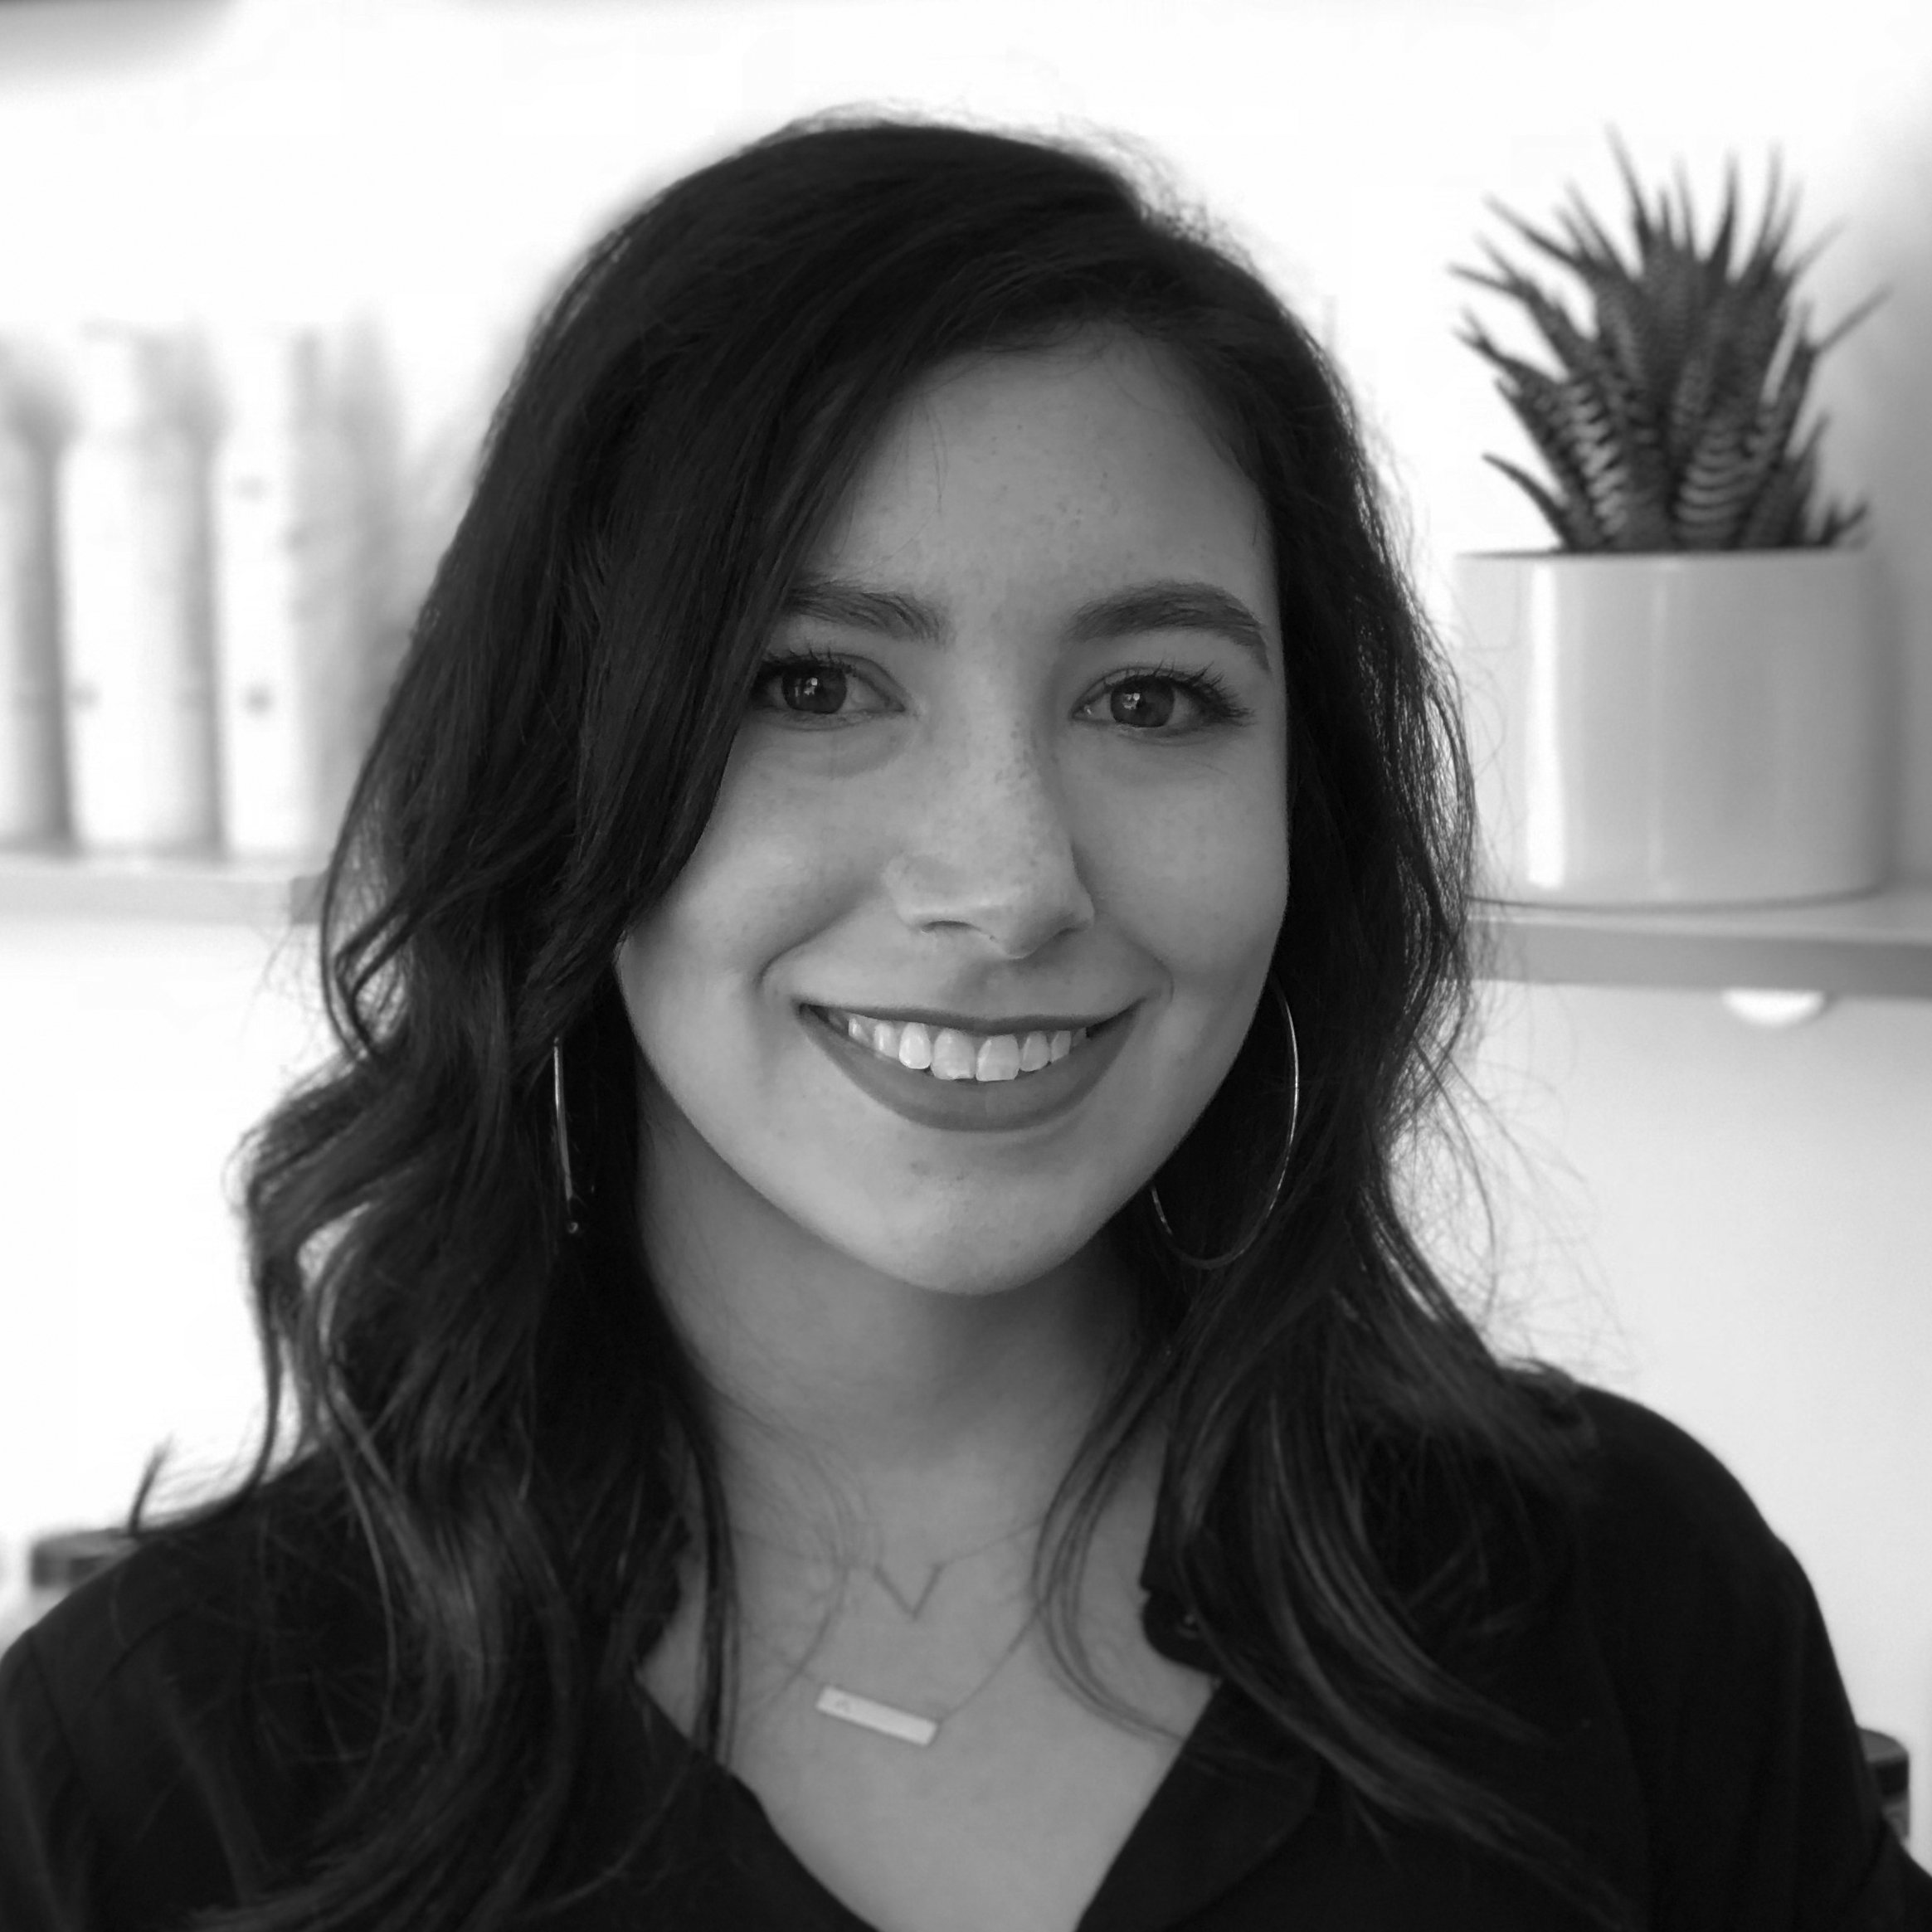 Alecz - SugaristAlecz is a graduate of the Gary Manuel Aveda Institute located in Seattle. With two years of sugaring and skin care experience under her belt, she moved to California in 2018 and found a home at sugaring LA. Her passion for esthetics combined with her extensive background in customer service makes each visit a customized experience. Her goal is to create a safe and tranquil space for people of all backgrounds and identities, a space that is completely free of judgment. Her favorite part of being an esthetician is challenging stereotypes and